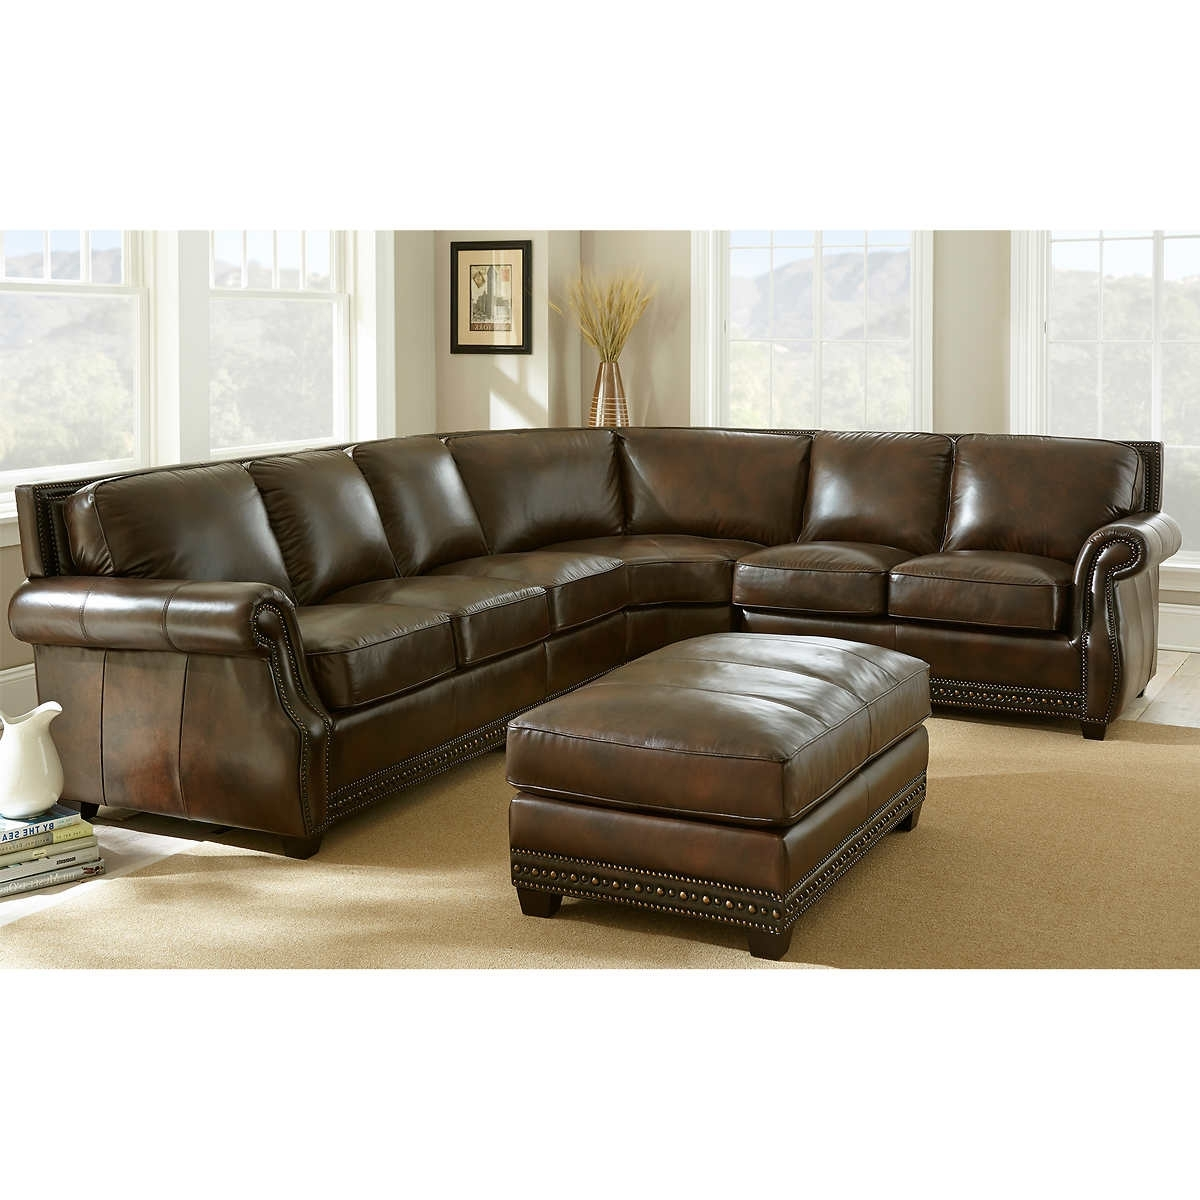 Fancy Leather Sectional Sofa With Recliner 30 On Sofas And Couches With Preferred Leather Sectional Sofas (View 4 of 15)